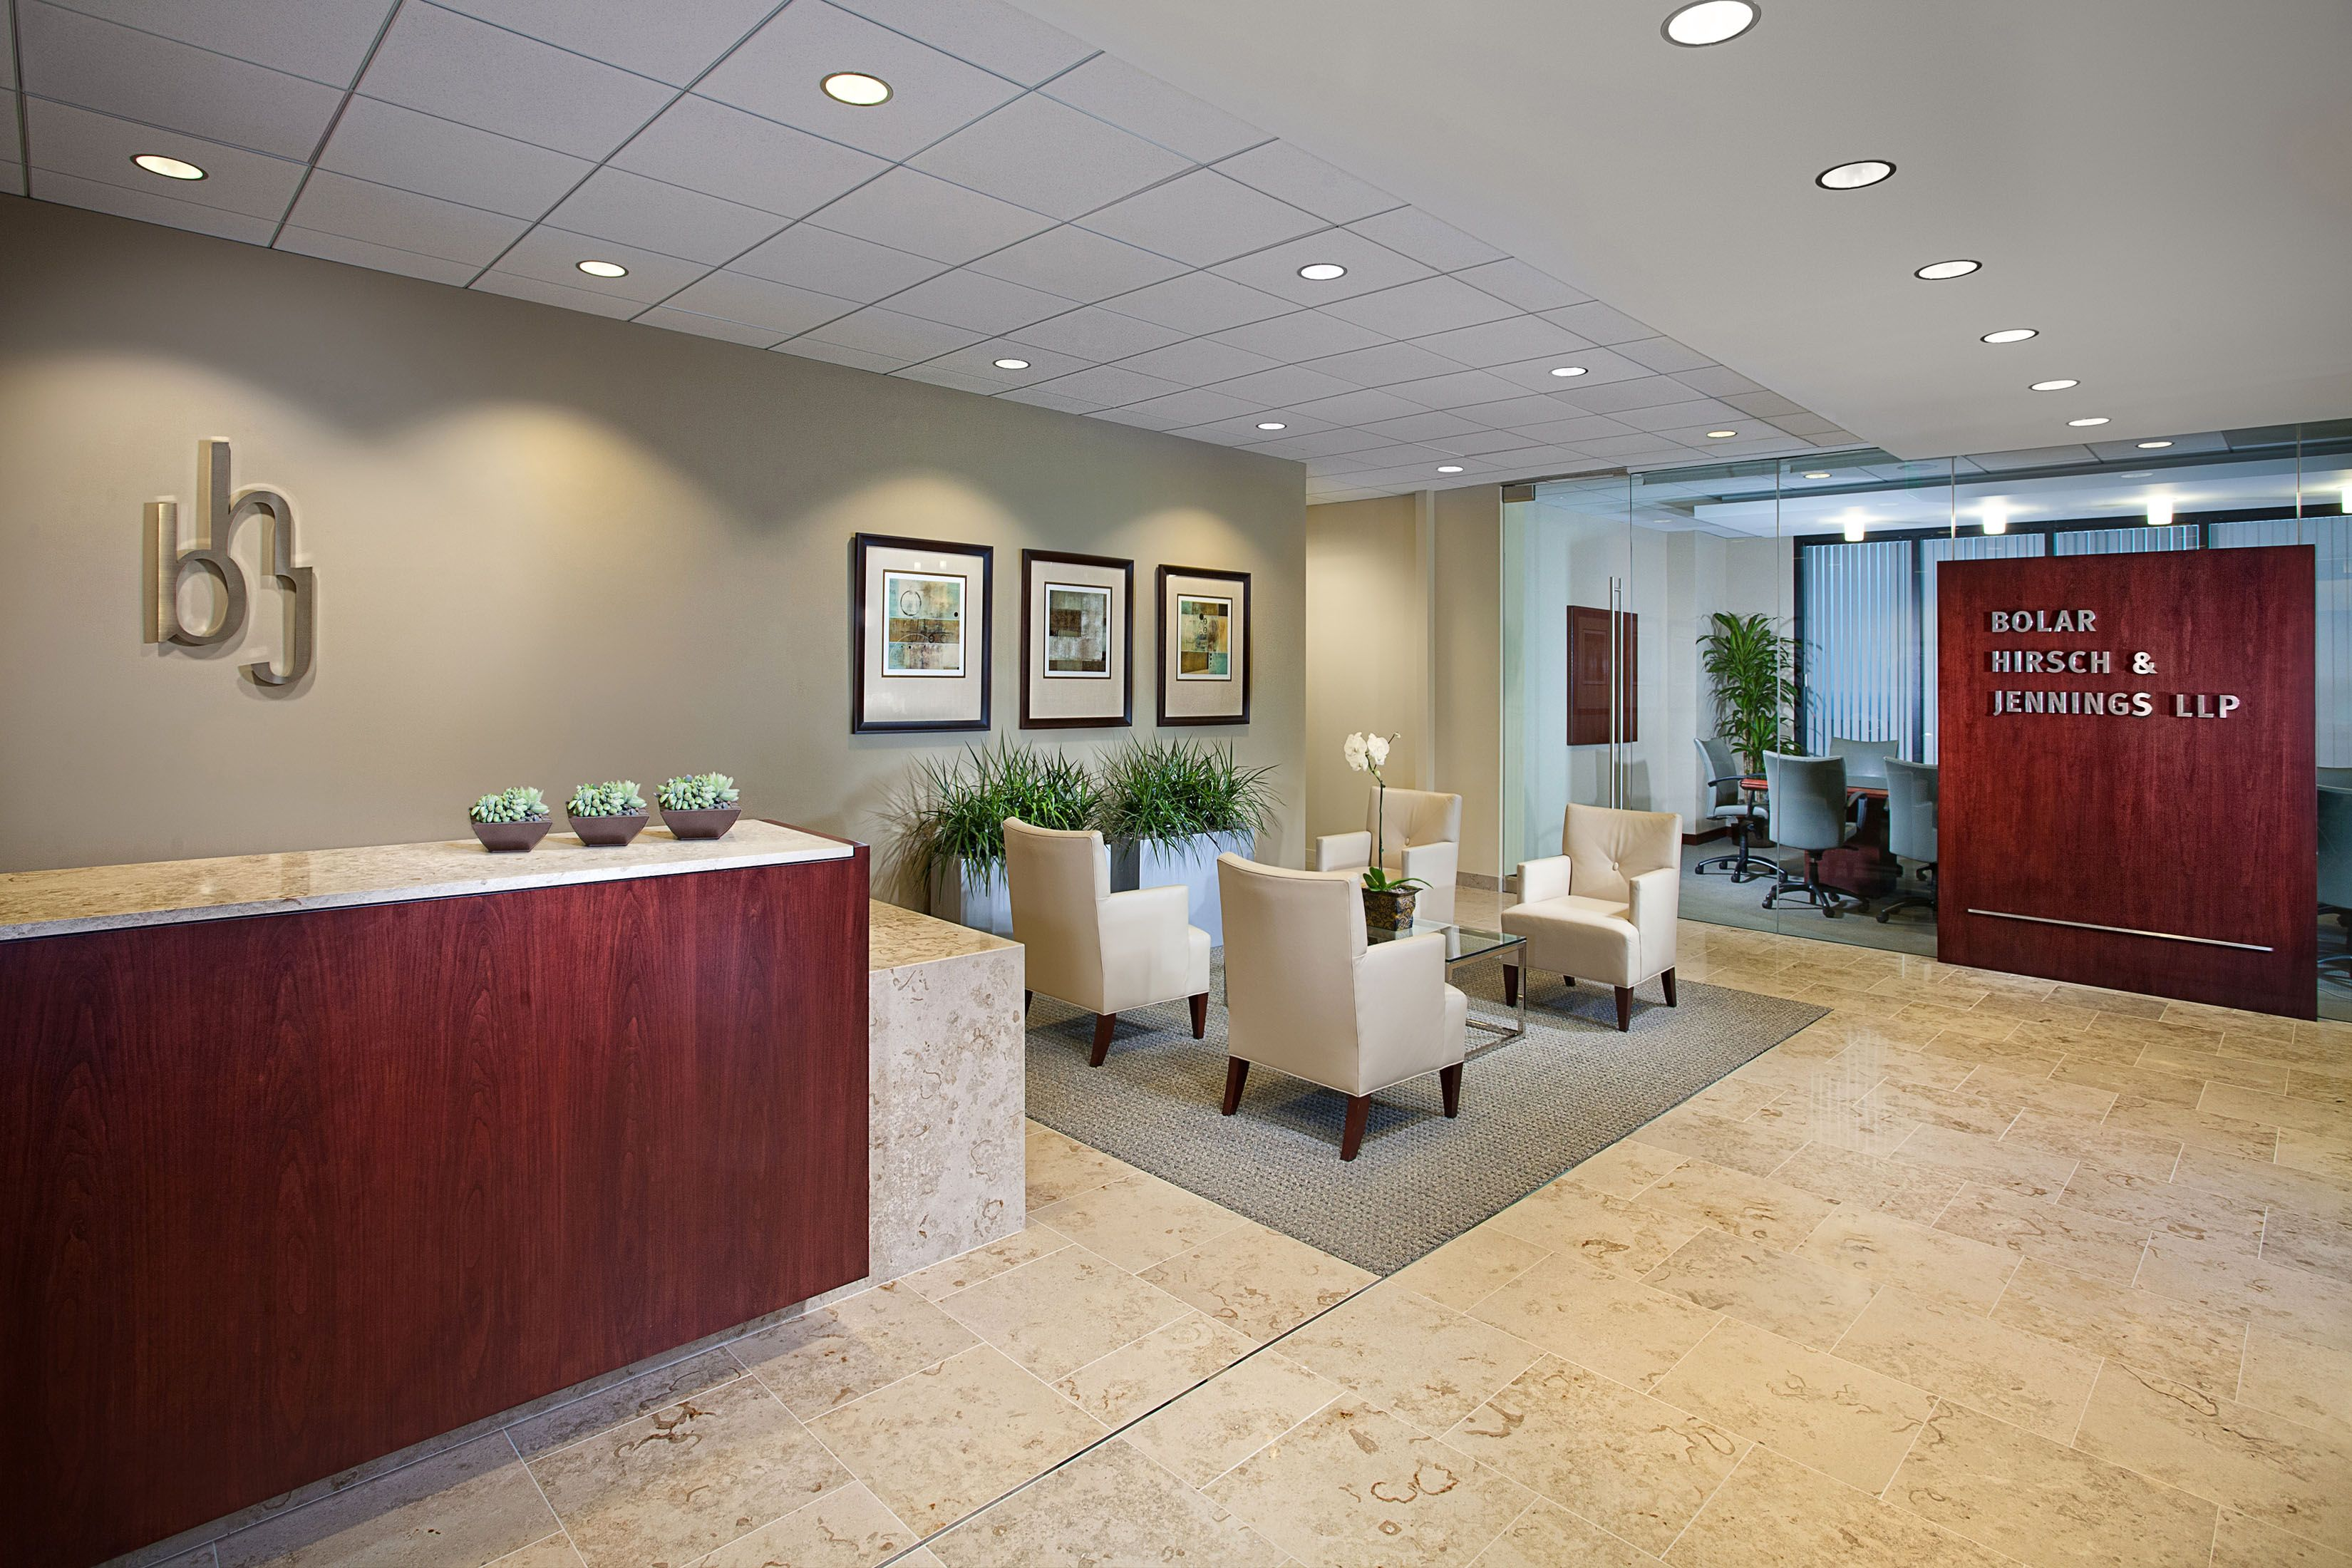 Lobby Decoration Ideas Real Estate Office Lobby Google Search Office Design